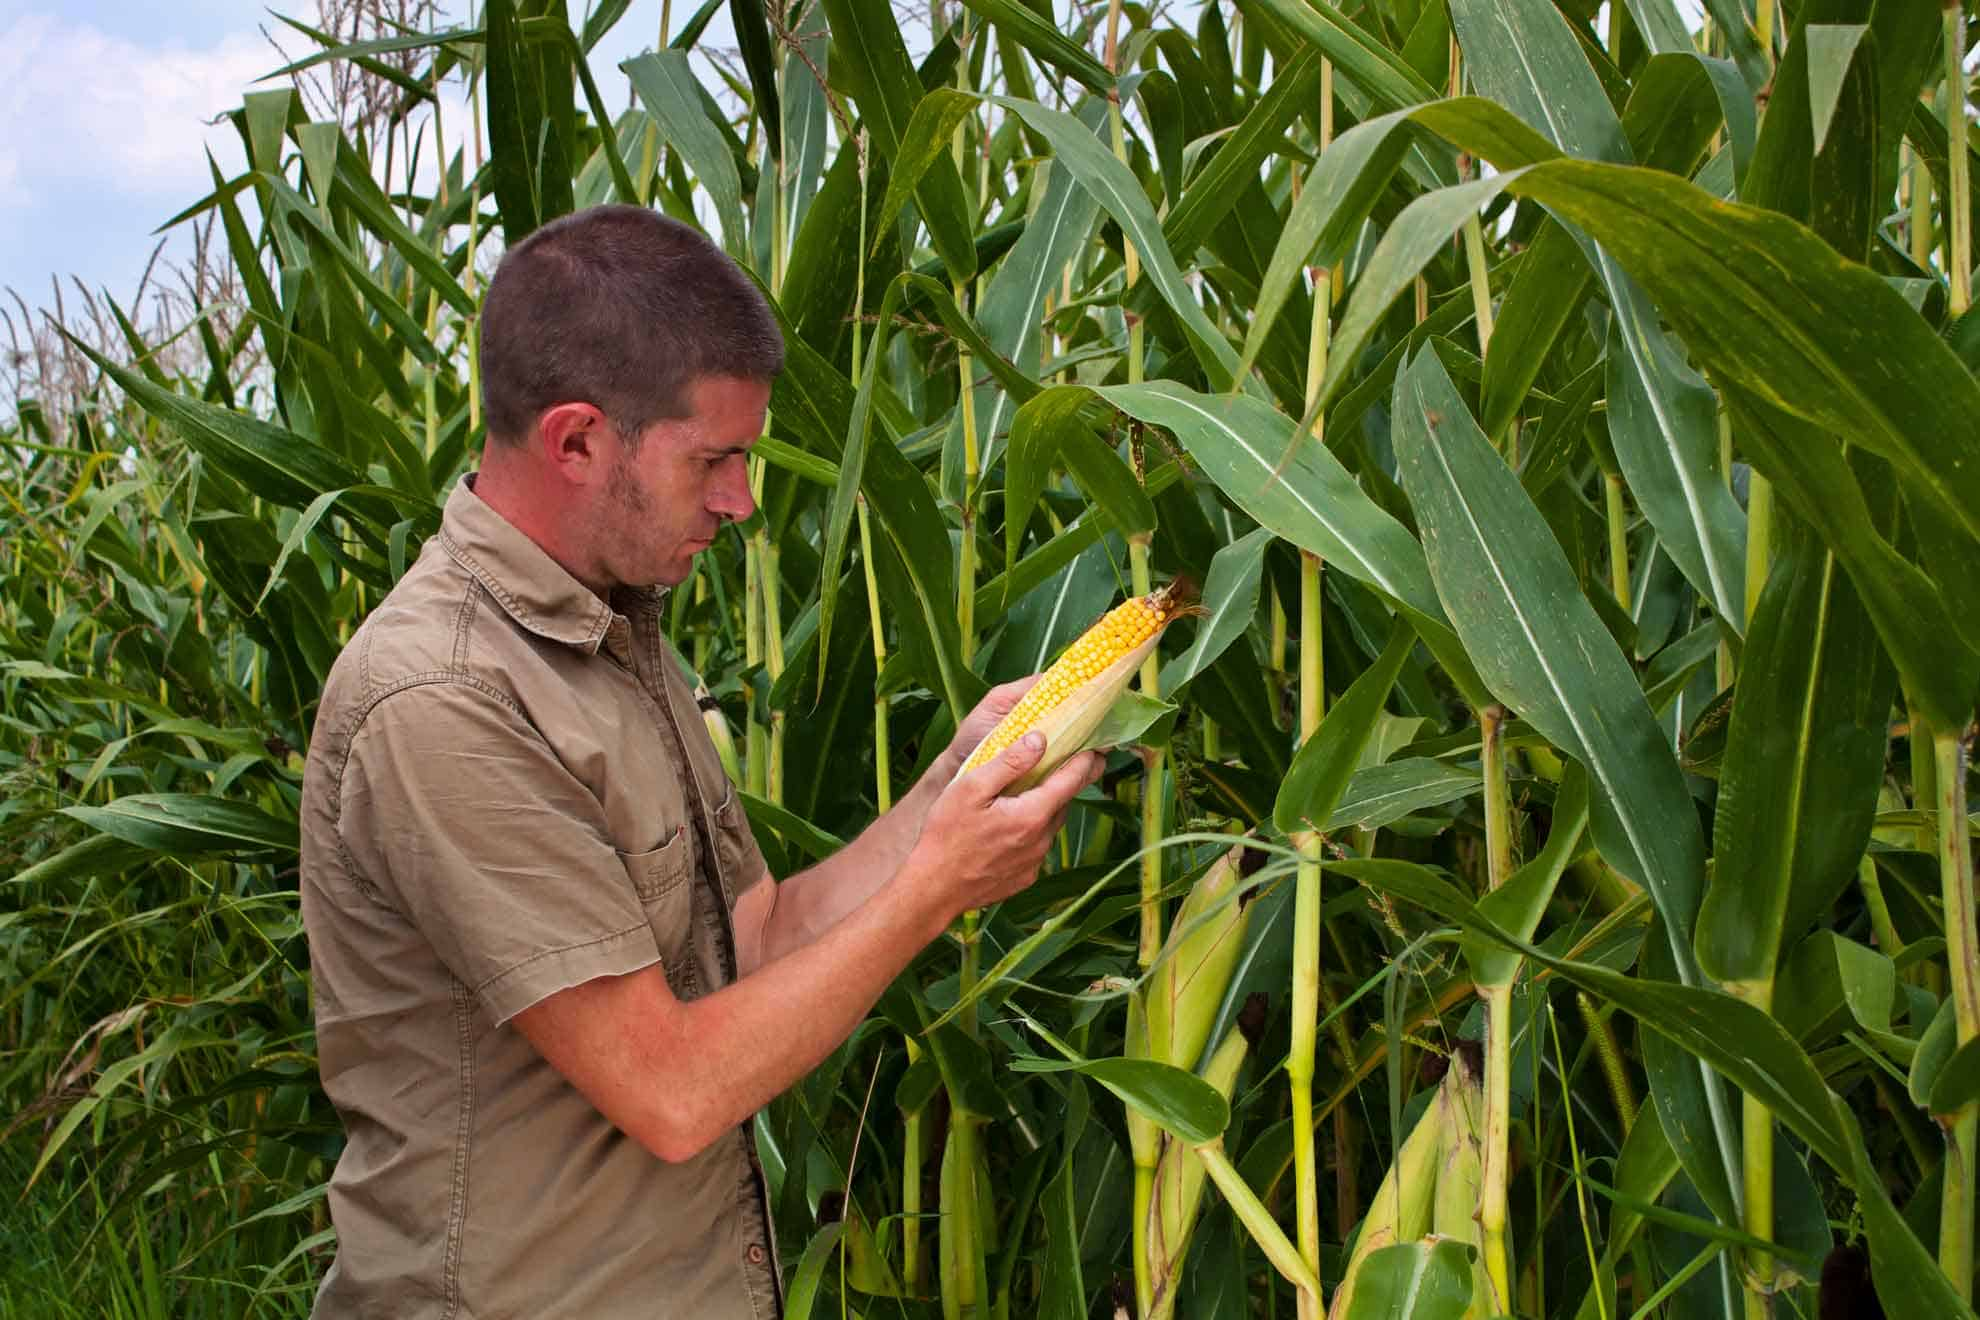 Man checking corn in a corn field